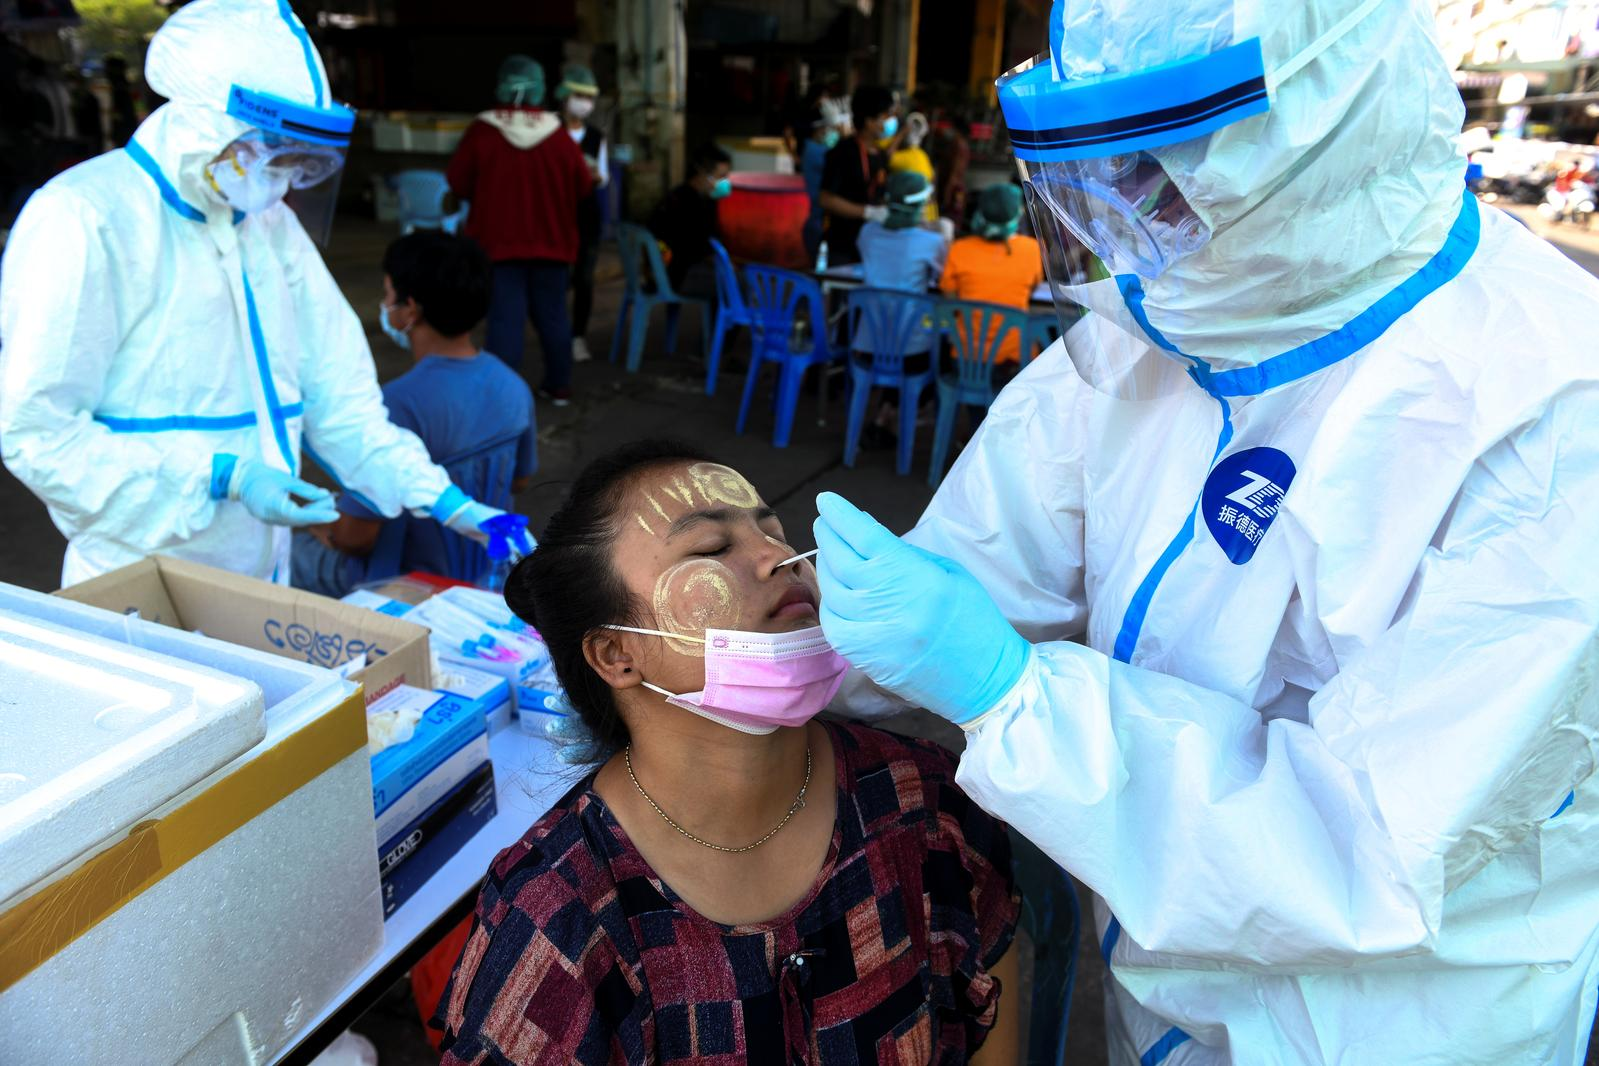 Thailand reports record surge in daily coronavirus cases to over 500